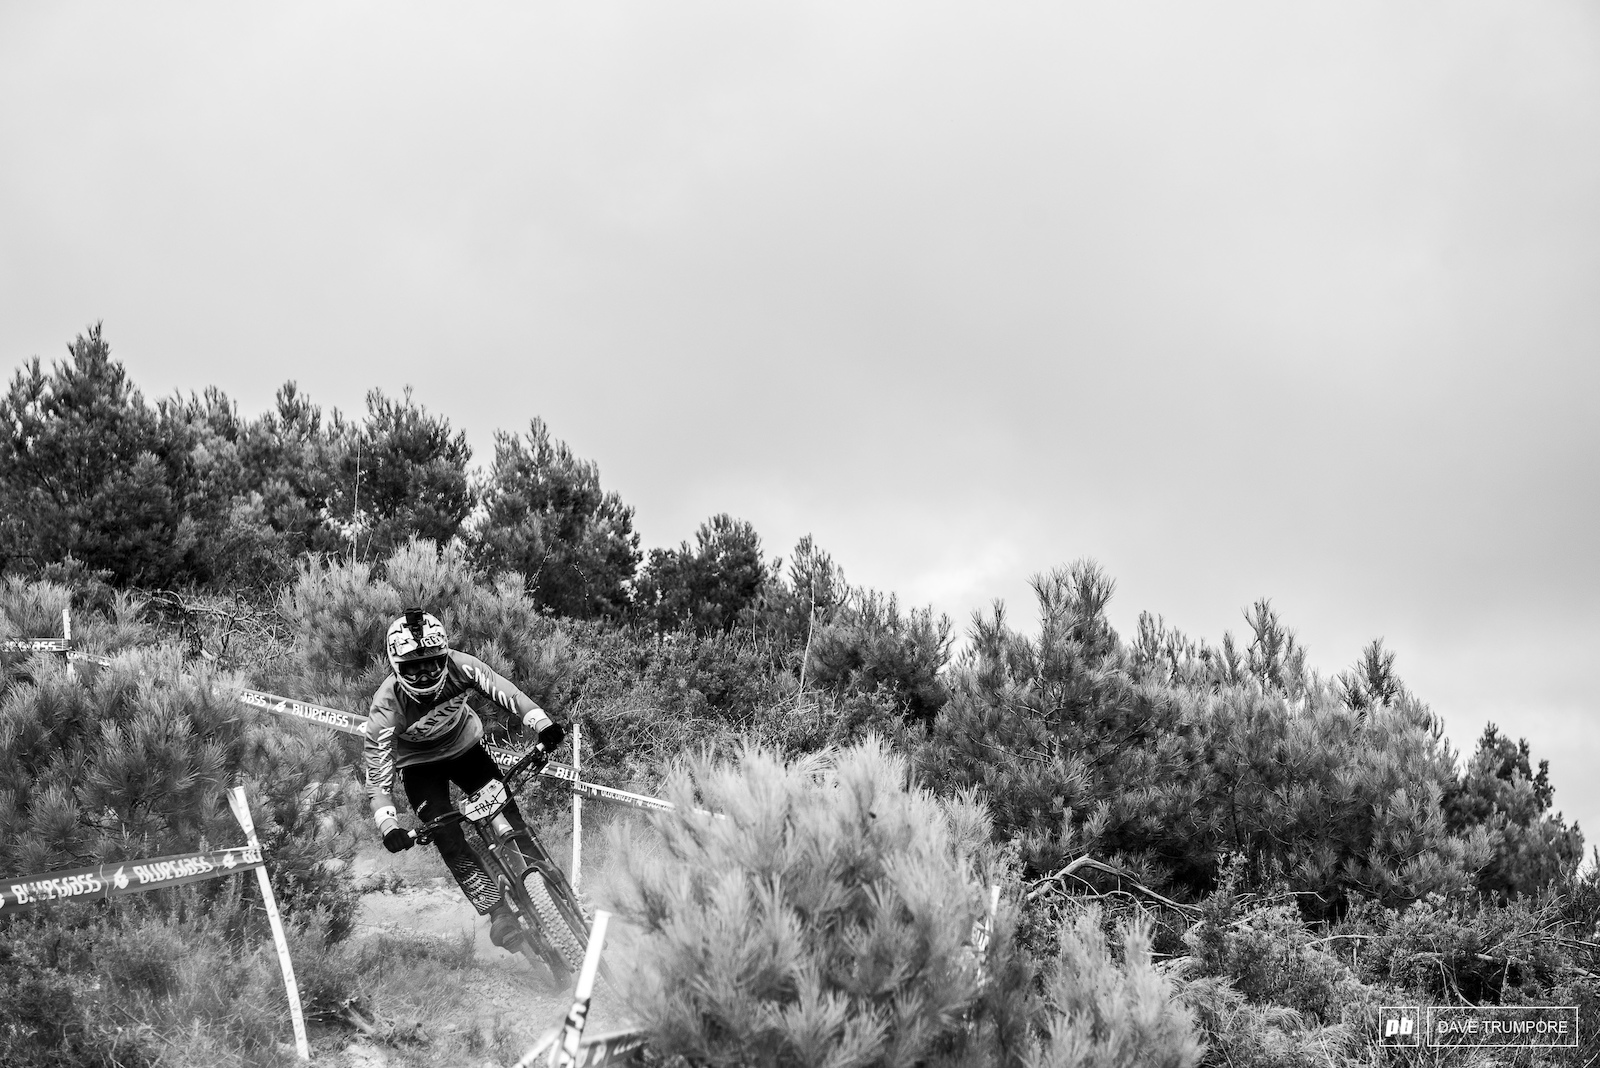 Florian Nicolai is one of three riders on the powerhouse French team